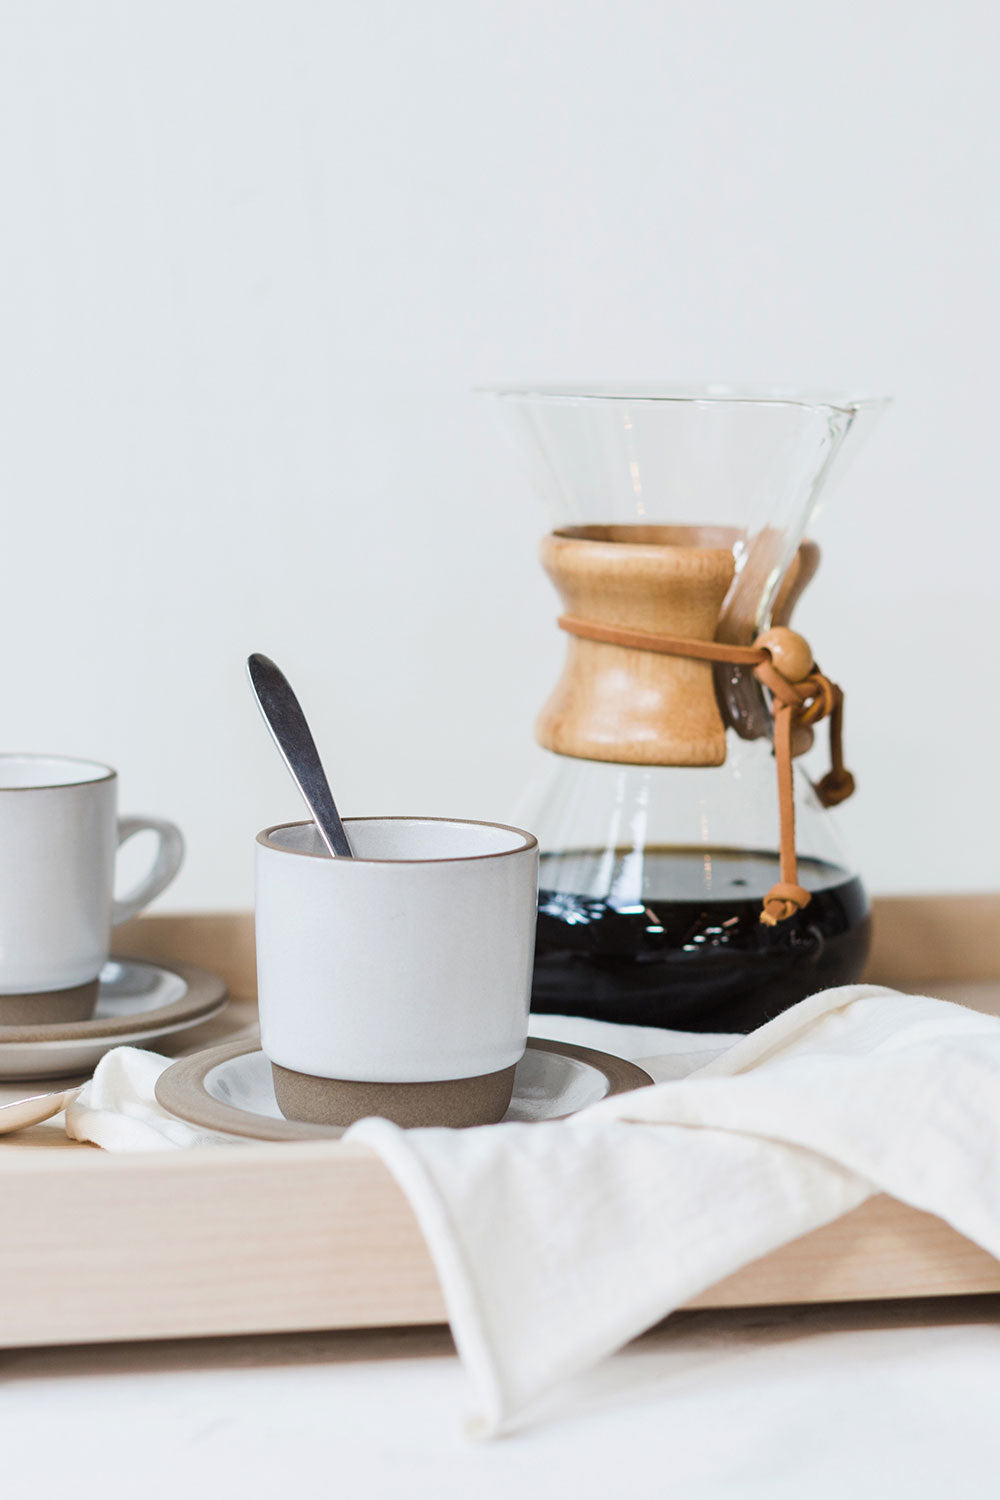 Alabama Chanin Chemex Pour Over Glass Coffee Maker with Coffee and Mugs